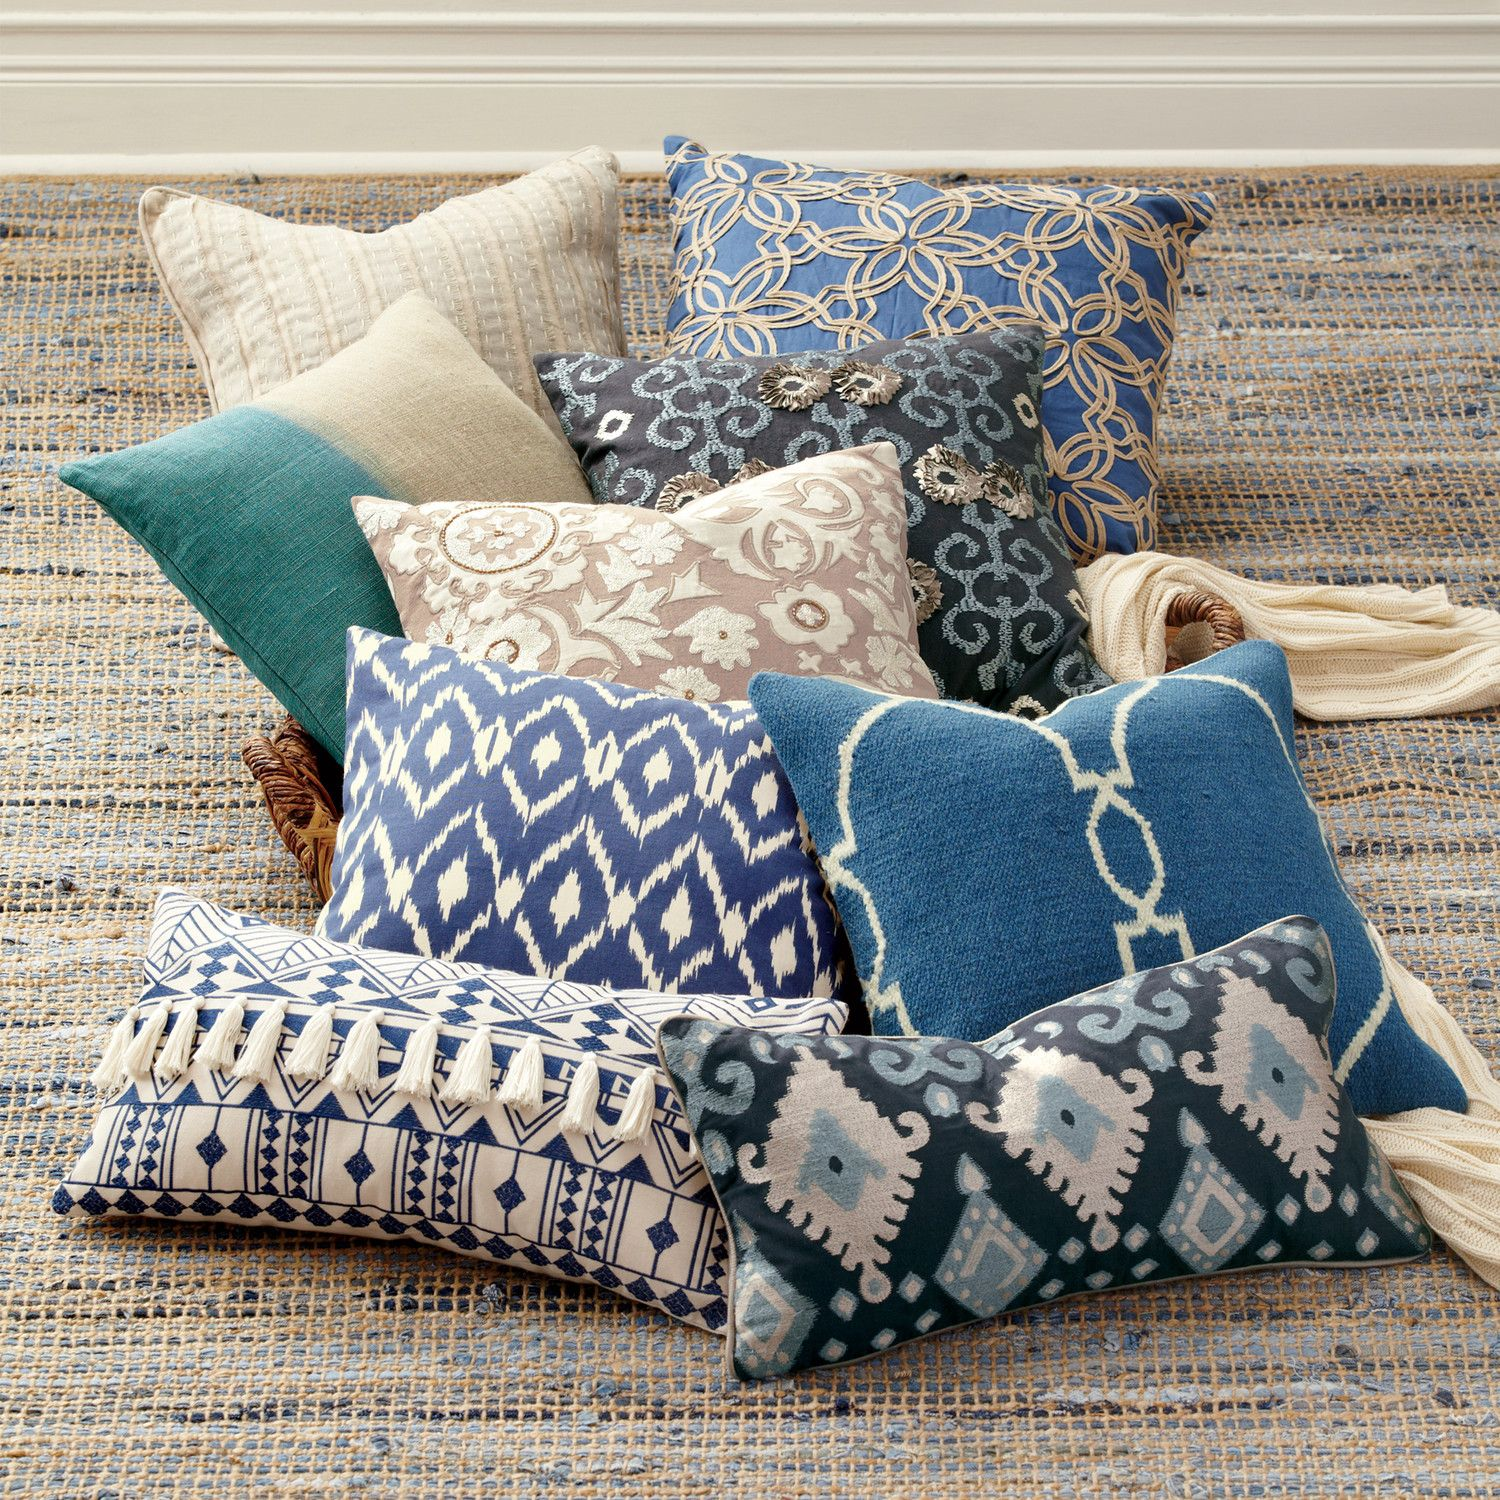 Raina Pillow Cover The Raina Pillow Cover S Lively Southwestern Design Is Subdued By A Cool Blue And Gray Palette Made Of 100 Cotton Pillows Blue White Pillows Pillow Covers